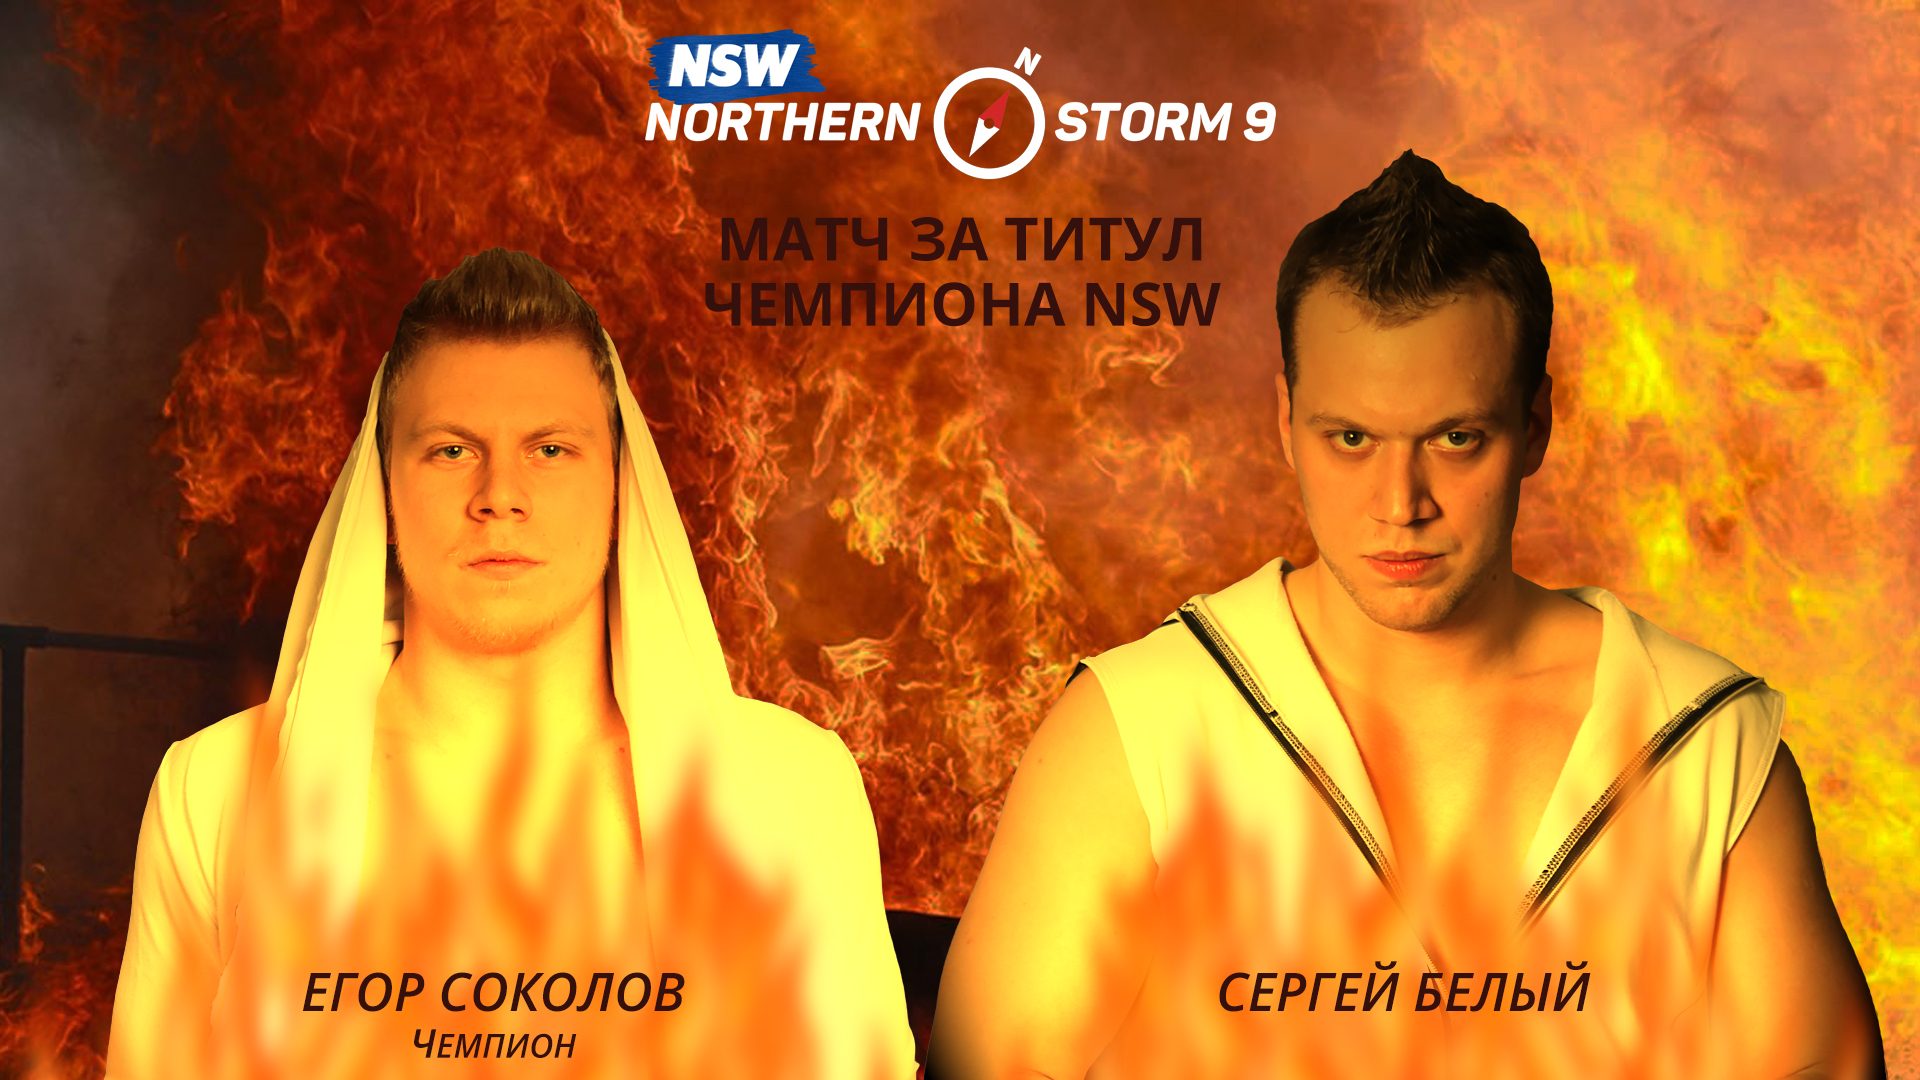 NSW Northern Storm 9: Егор Соколов против Сергей Белого